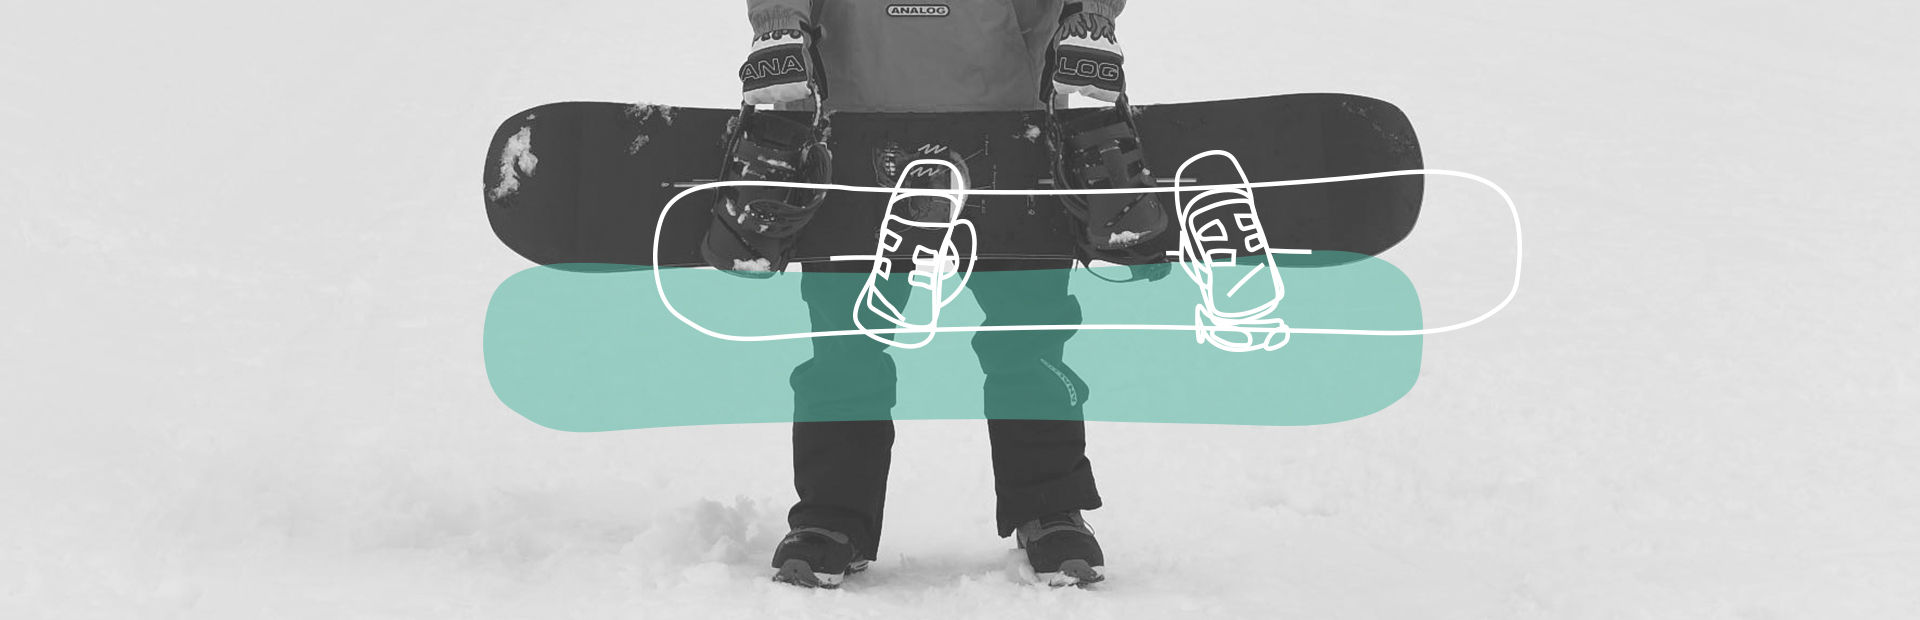 Snowboarder holding his snowboarding